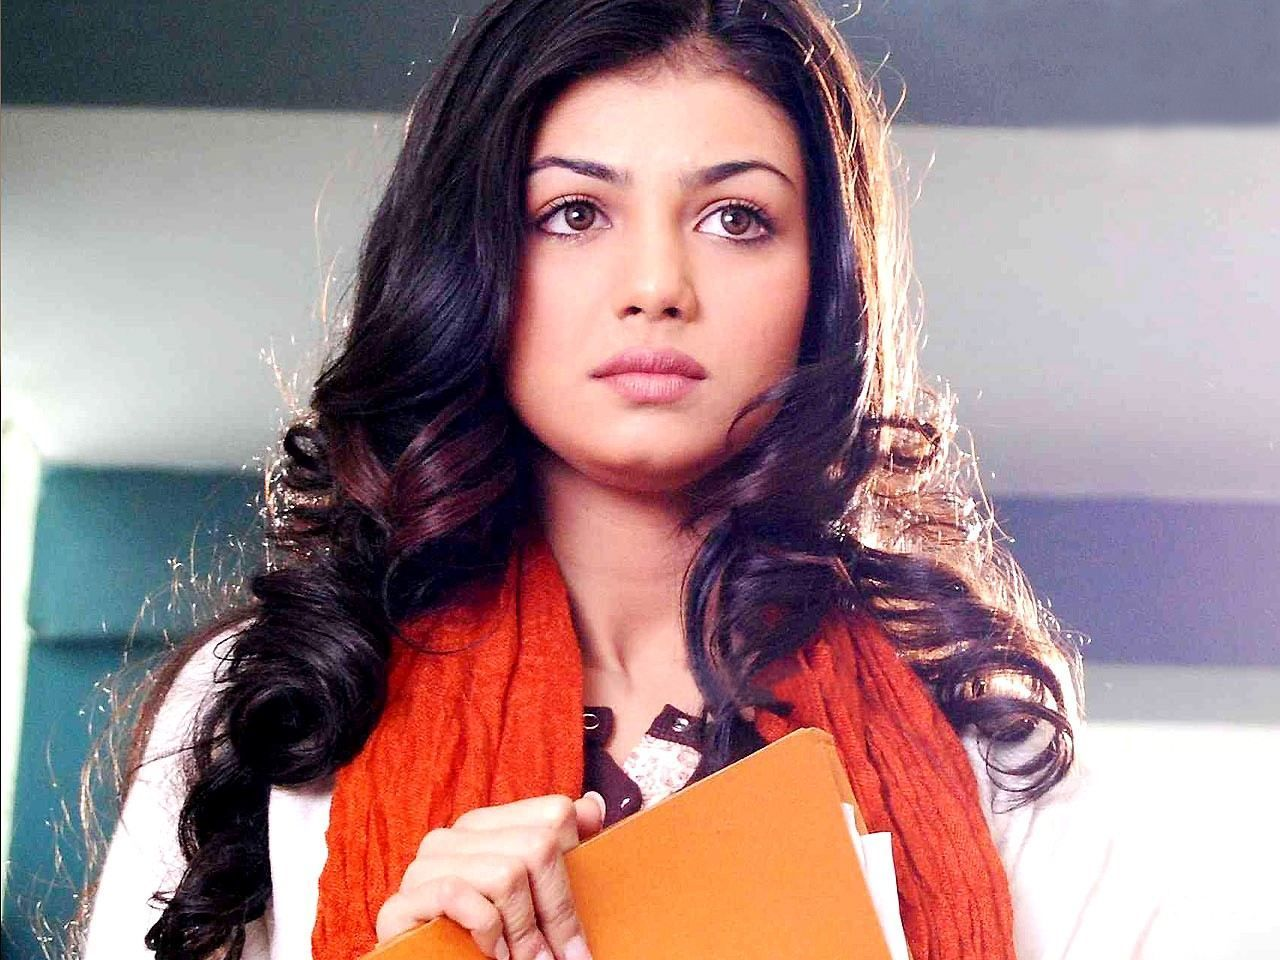 Ayesha Takia HD Wallpapers - Free download latest Ayesha Takia HD Wallpapers  for Computer, Mobile, iPhone, iPad or any Gadget at WallpapersCharlie.com.